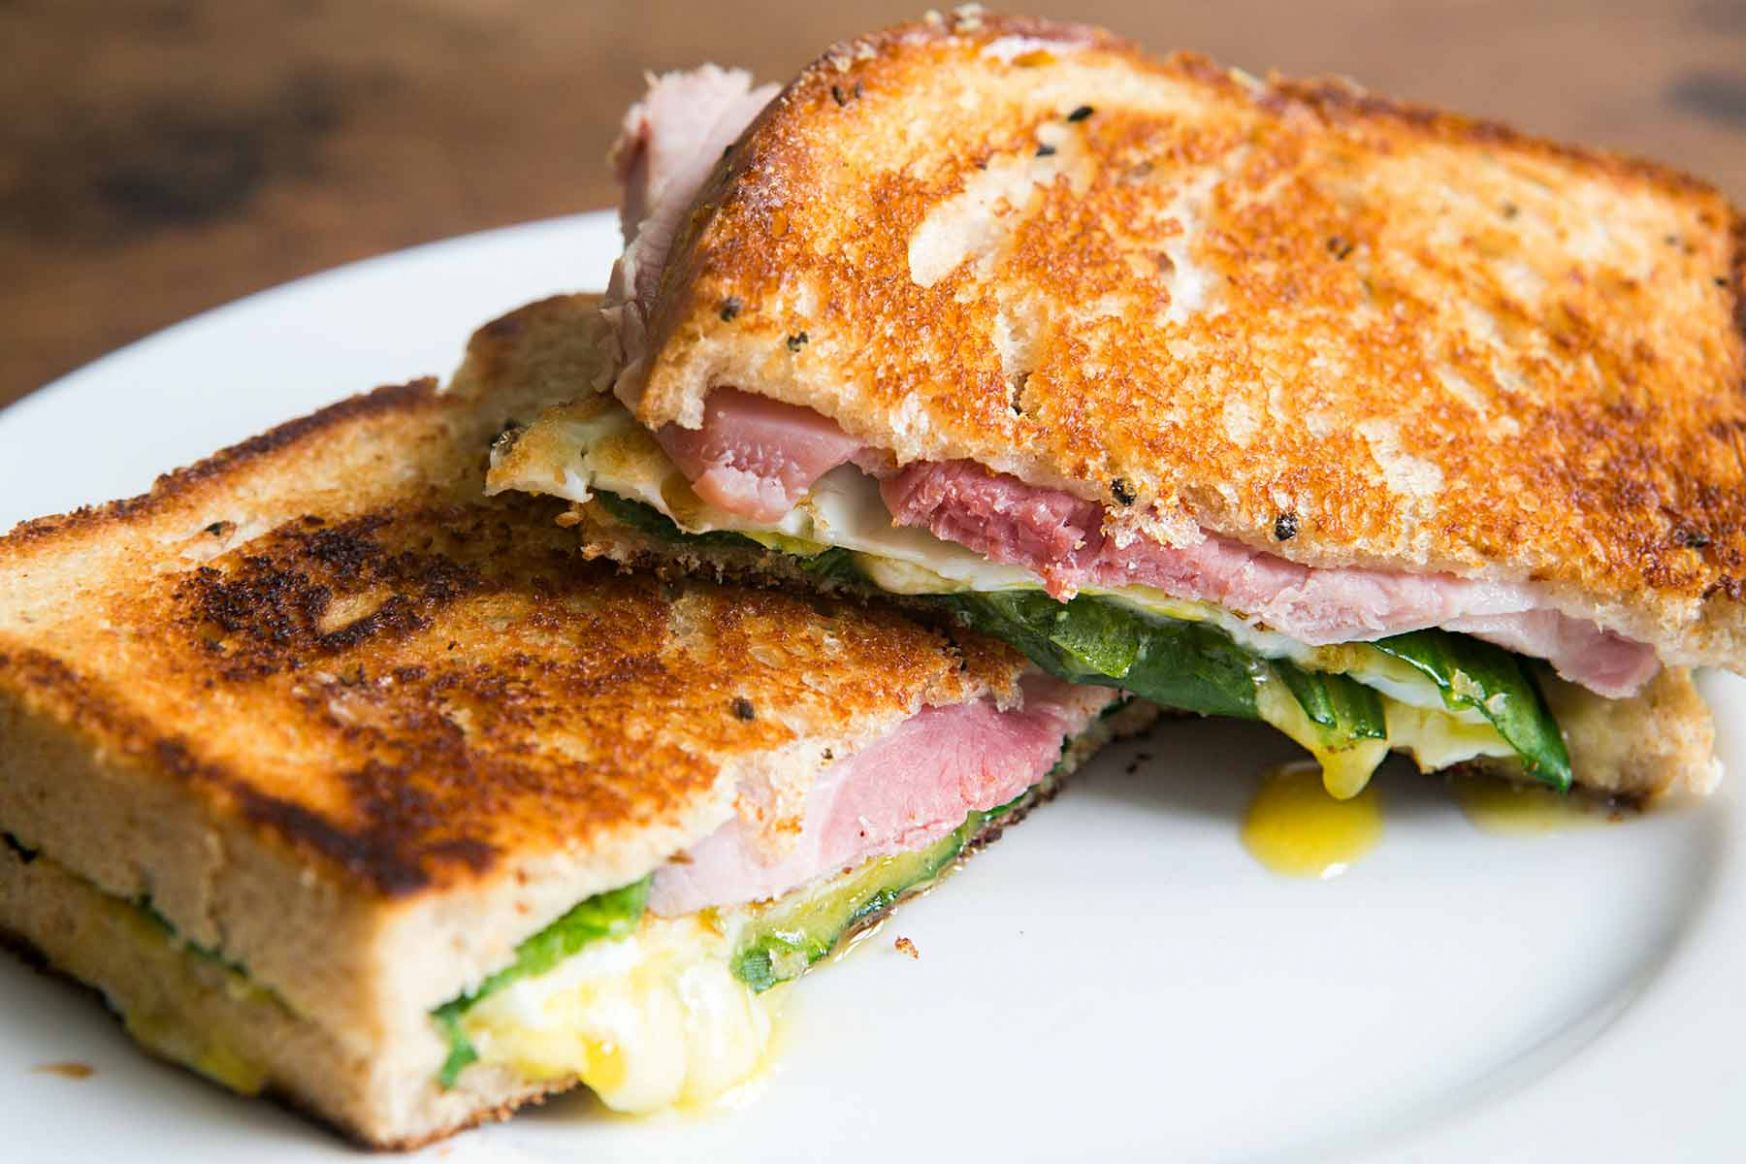 Greens, Eggs, and Ham, Grilled Cheese Sandwich - Sandwich Recipes Grilled Cheese